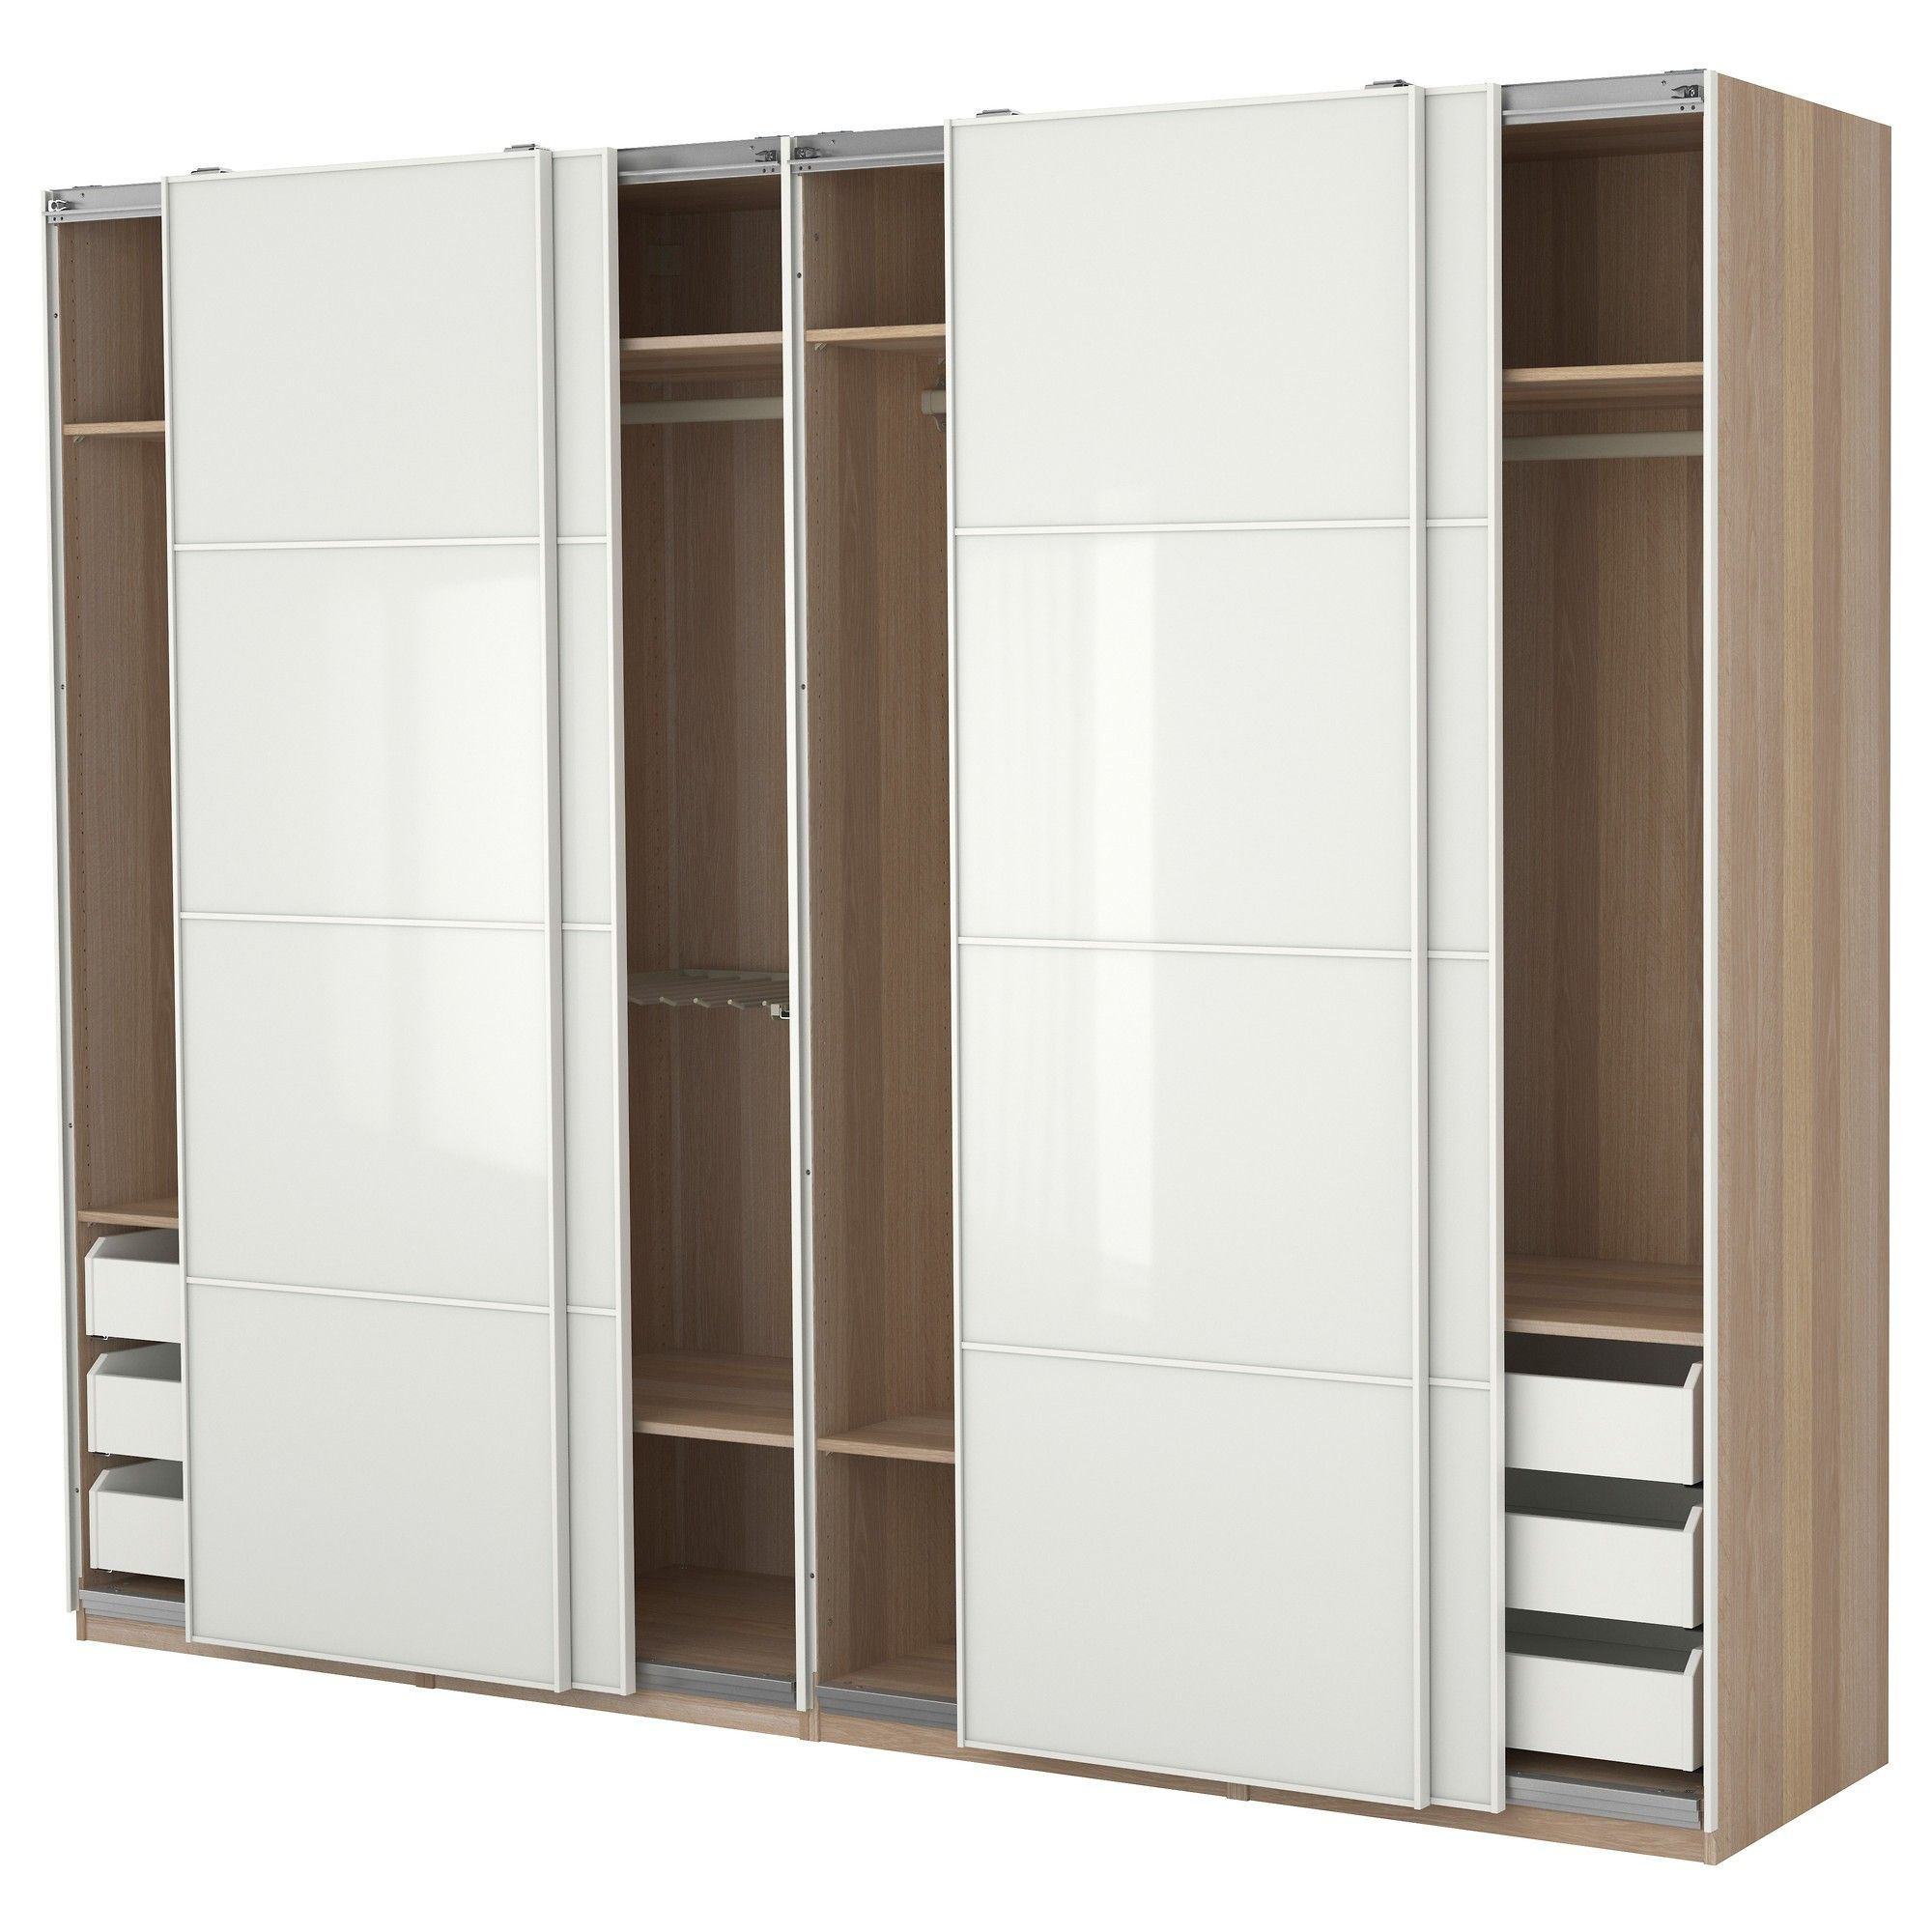 Superbe Interior Large Brown Wooden Closet With White Wooden Sliding Closet Doors  Plus Shelves Inside And Drawers Wonderful White Sliding Closet Doors For   ...